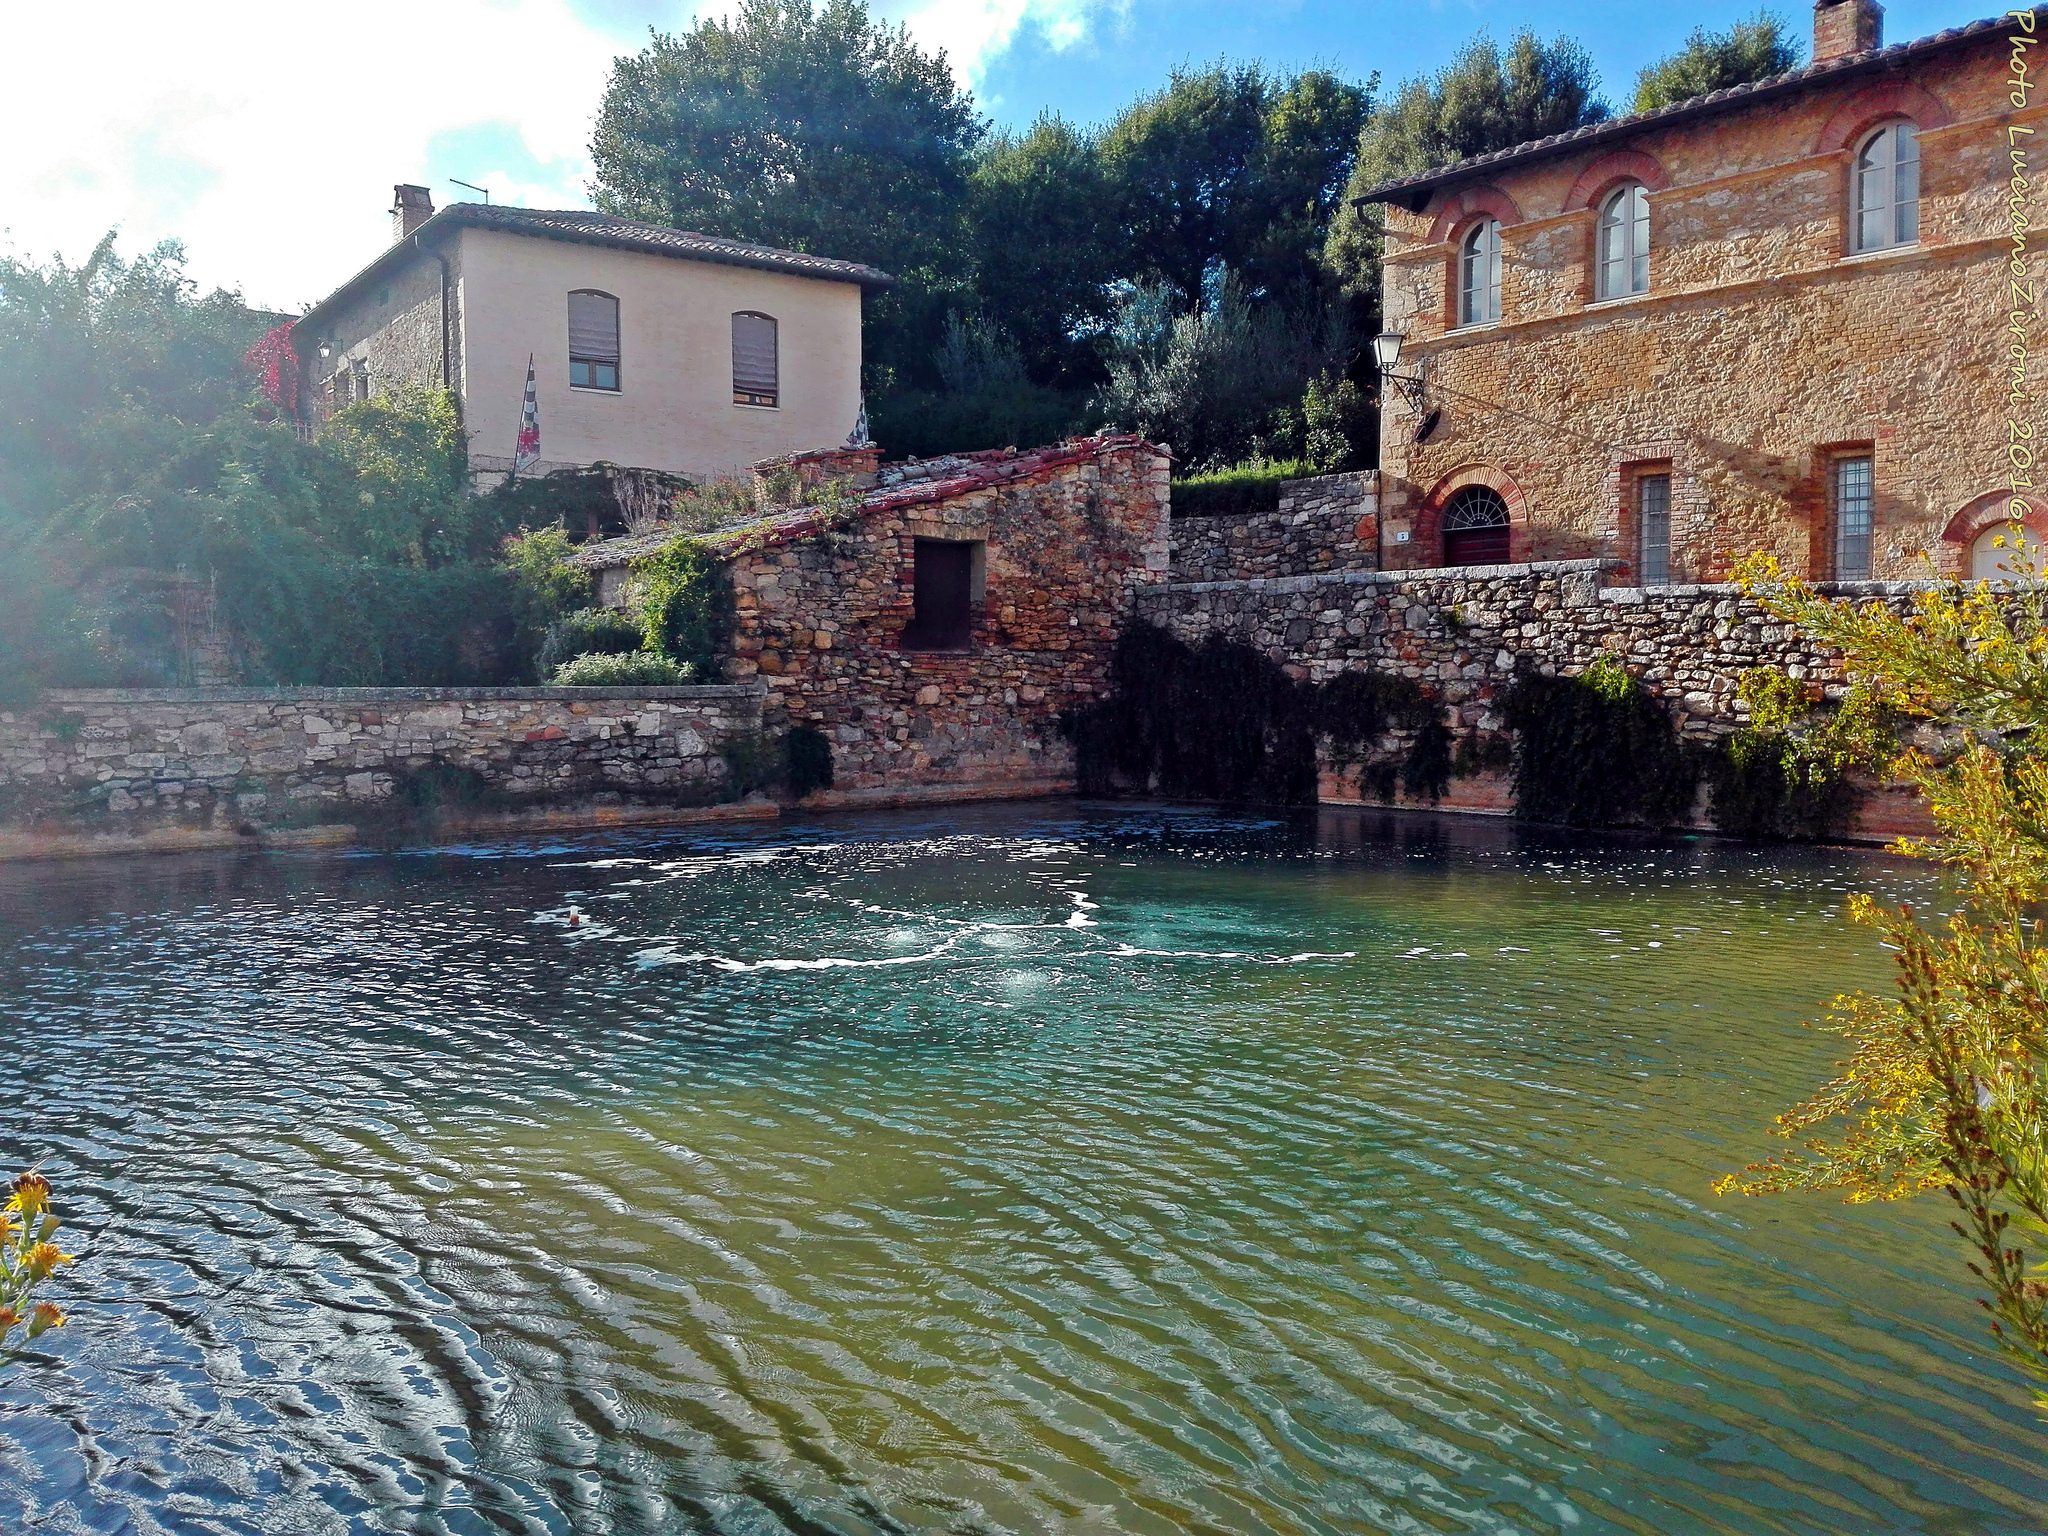 Bagno Vignoni Free Thermal Baths Friendship Just Add Water Hot Spring Water That Is Brigolante